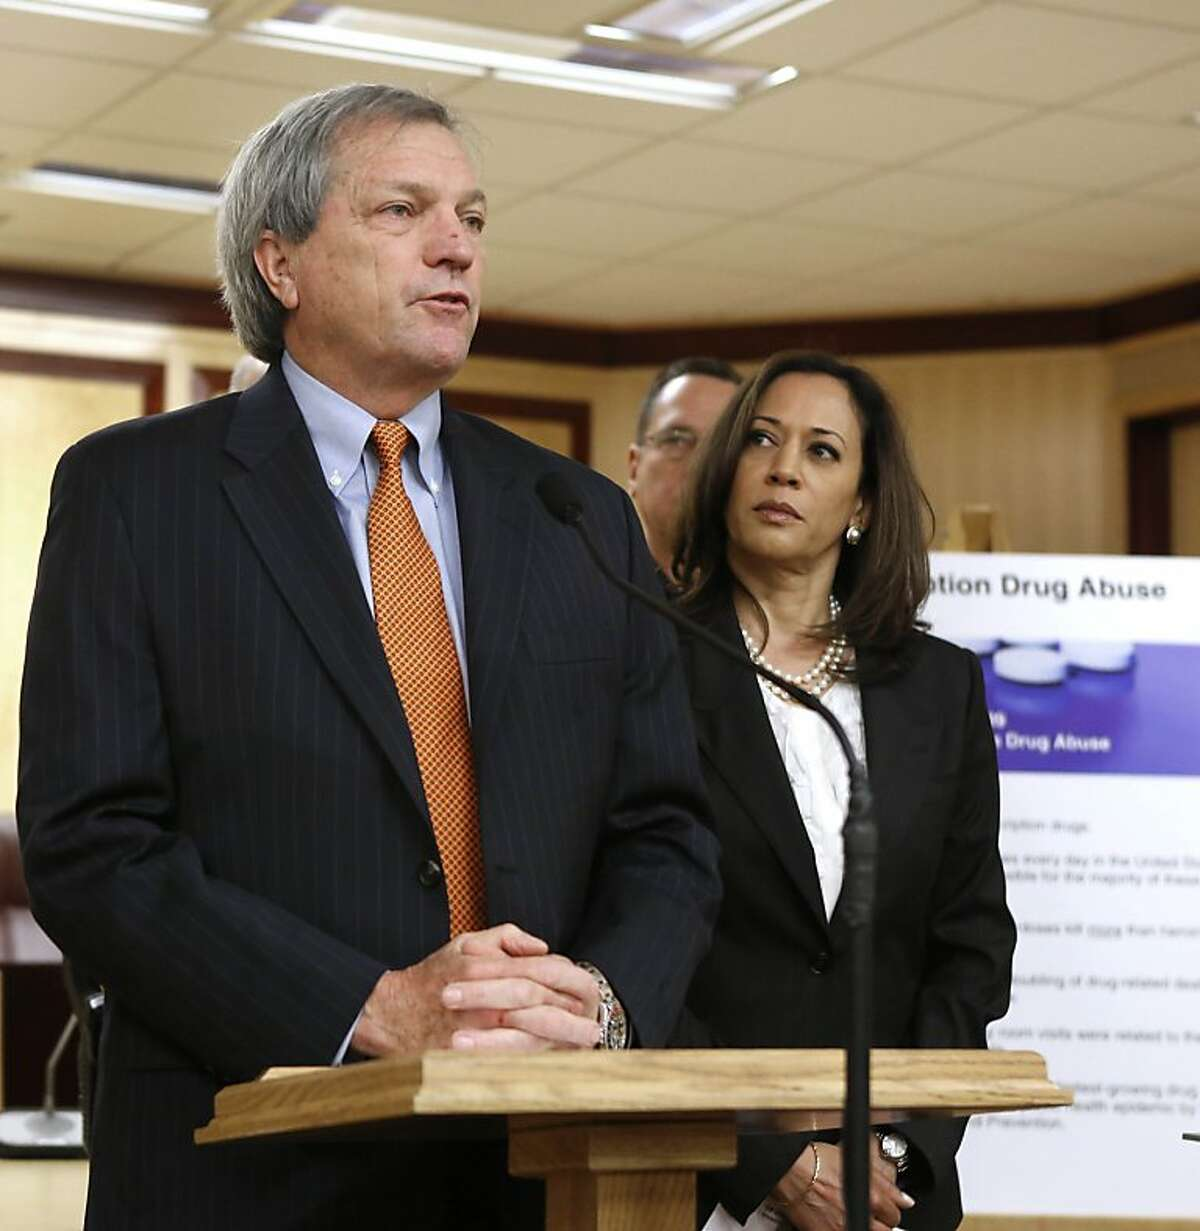 State Sen. Mark DeSaulnier, D-Concord, discusses his measure to impose a fee on medical care providers, drug manufacturers and health insurance plans to provide money to upgrade a substance-abuse tracking systems, at a Capitol news conference in Sacramento, Calif., Monday, April 15, 2013. Attorney General Kamala Harris, right, who supports the bill, says that an estimated $3.8 million is need for the system which allows pharmacist to quickly review patients substance history as a way to deter drug abuse.(AP Photo/Rich Pedroncelli)